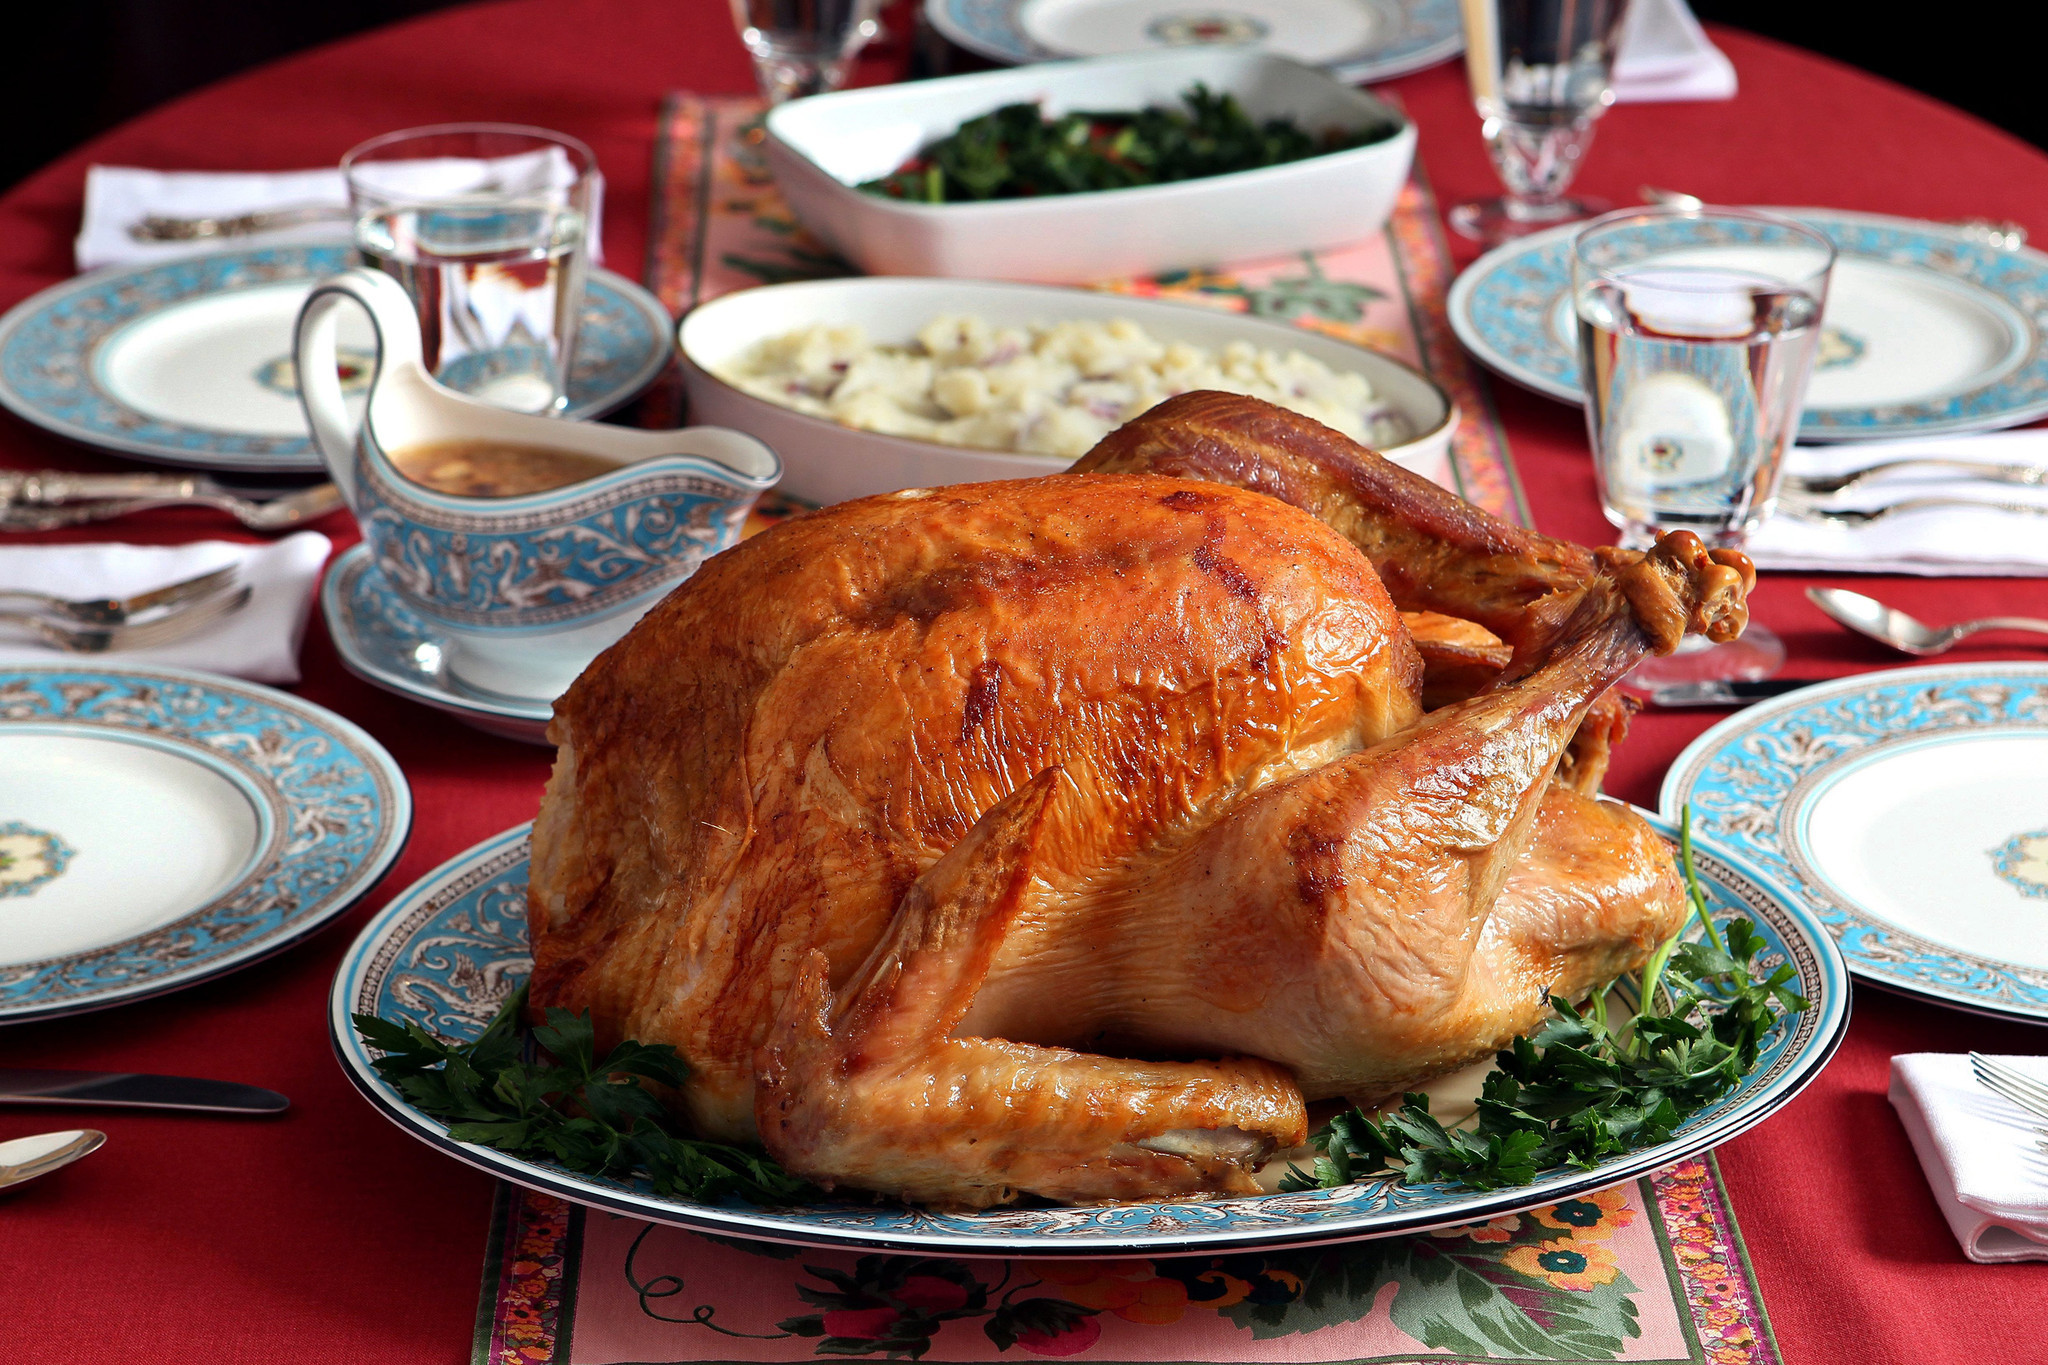 Restaurant Thanksgiving Dinner  Thanksgiving restaurant dining options in Baltimore